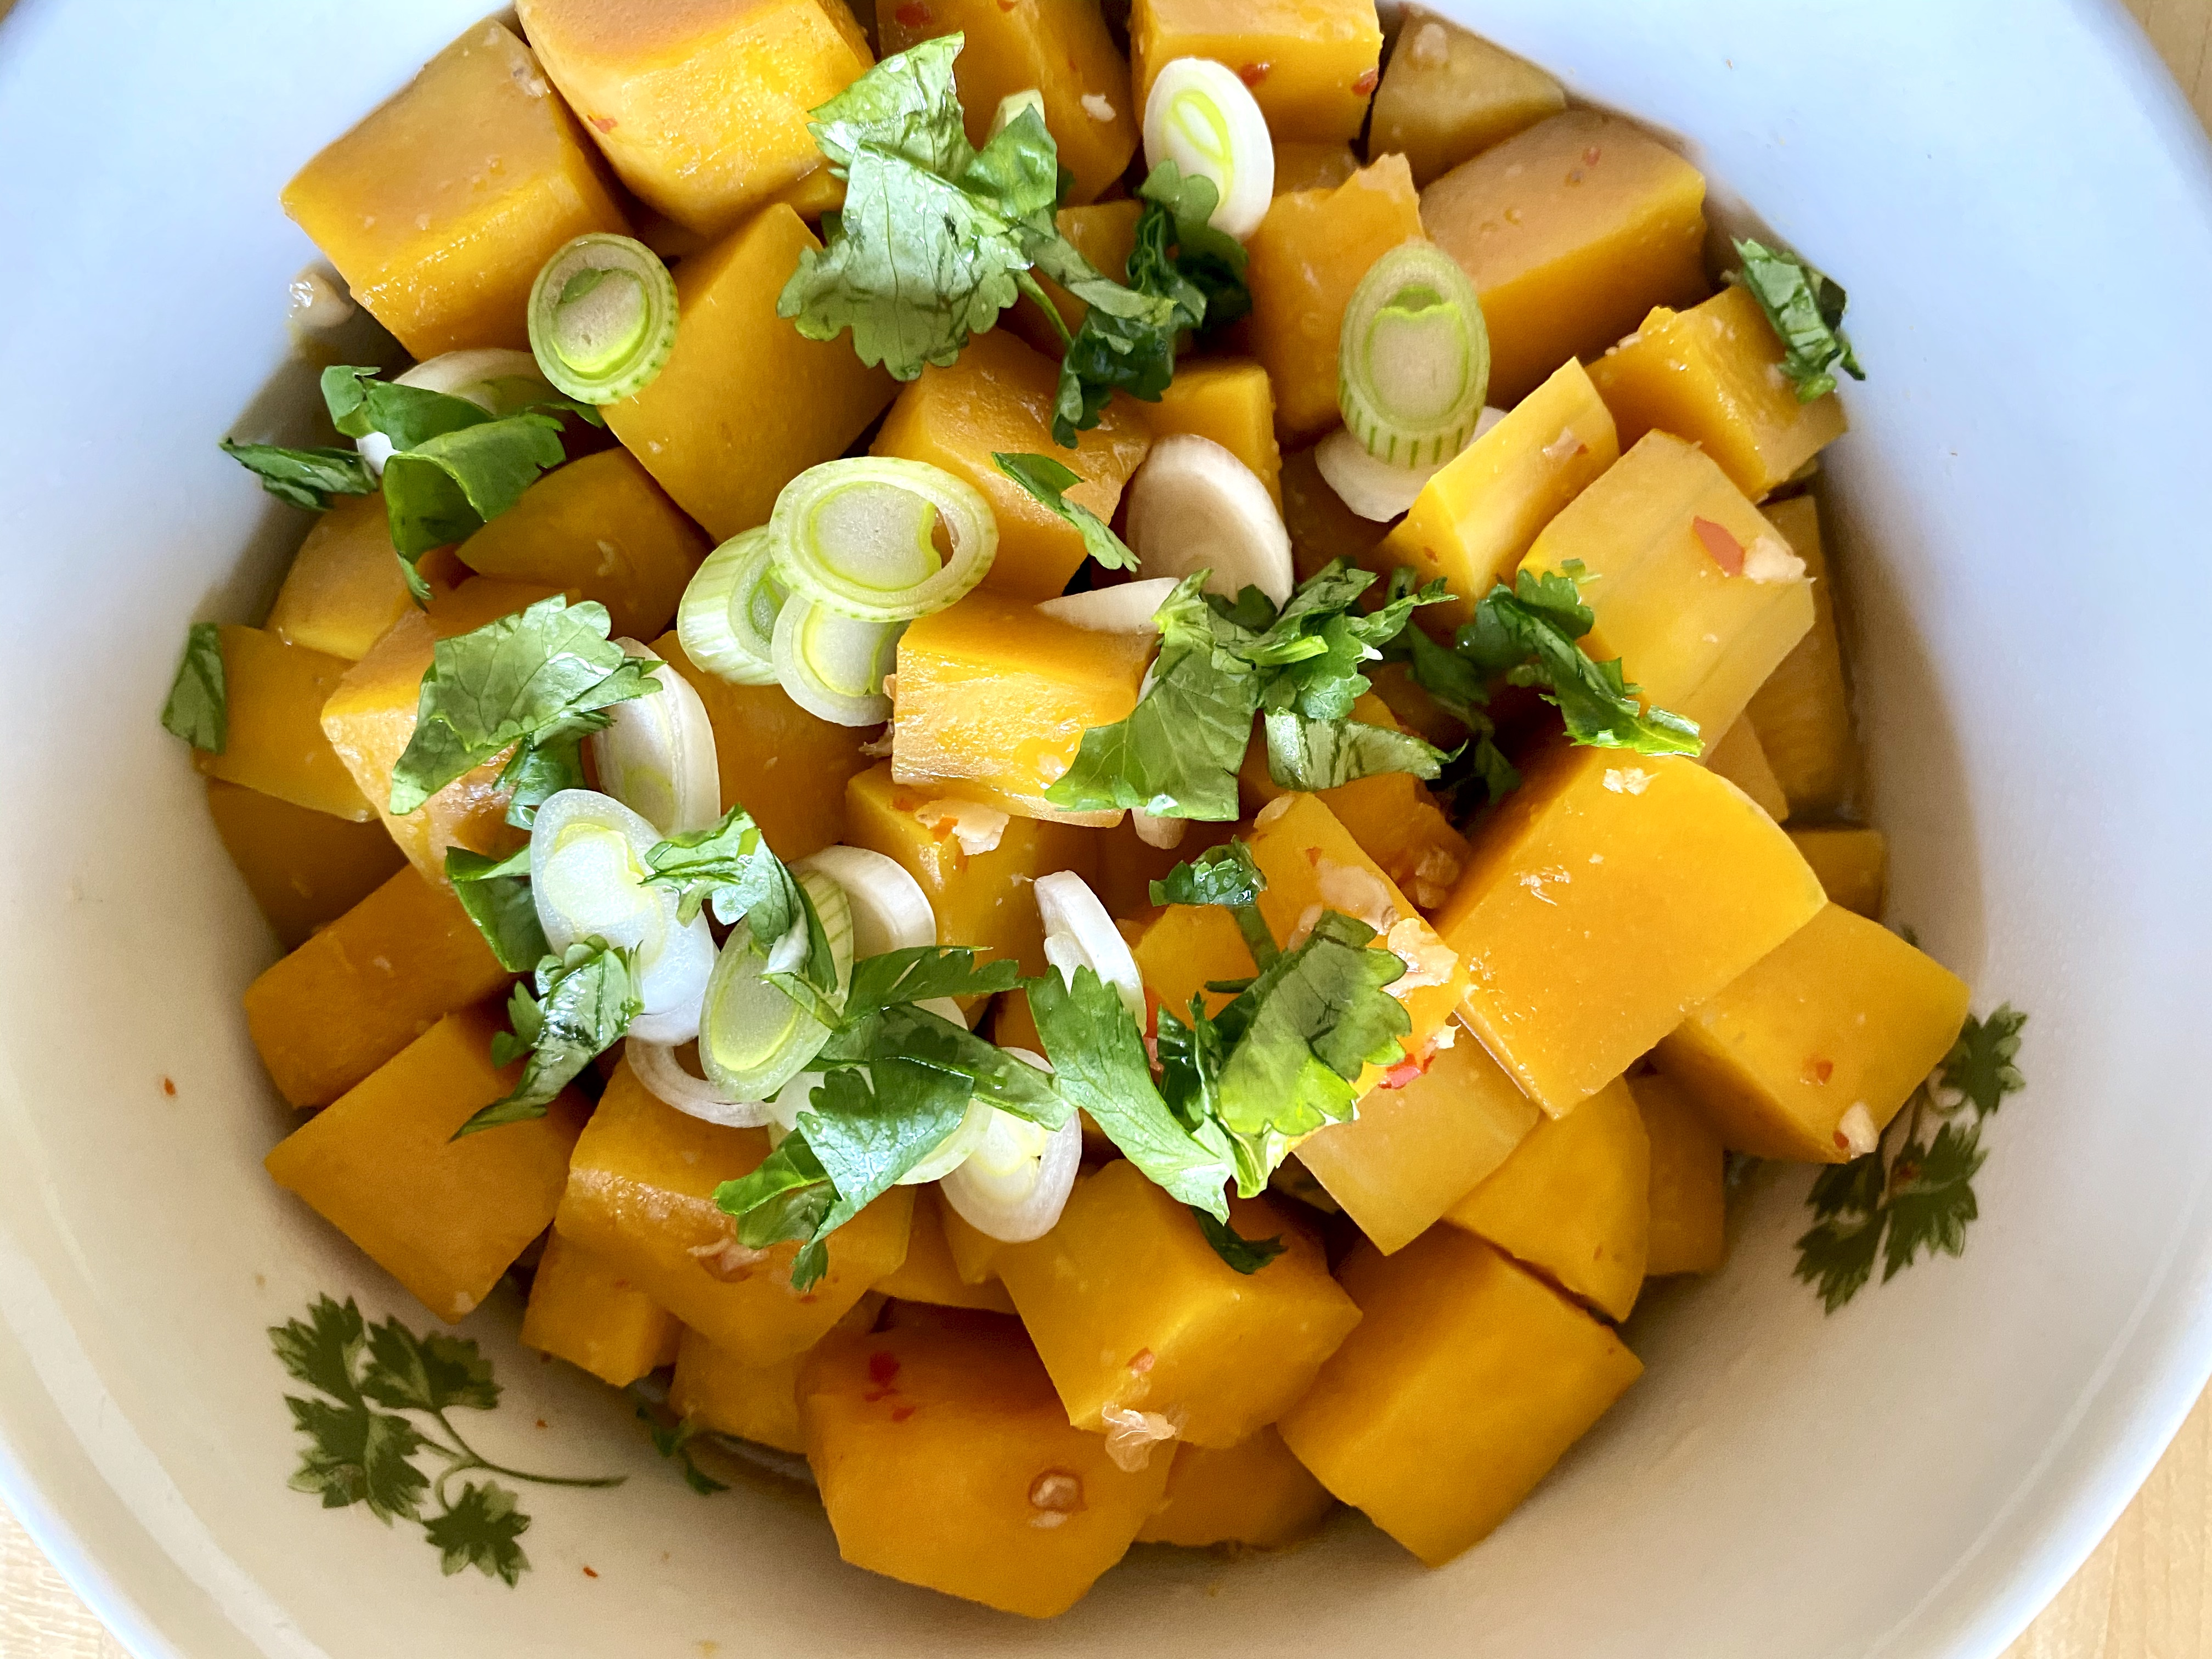 diced butternut squash with green onions